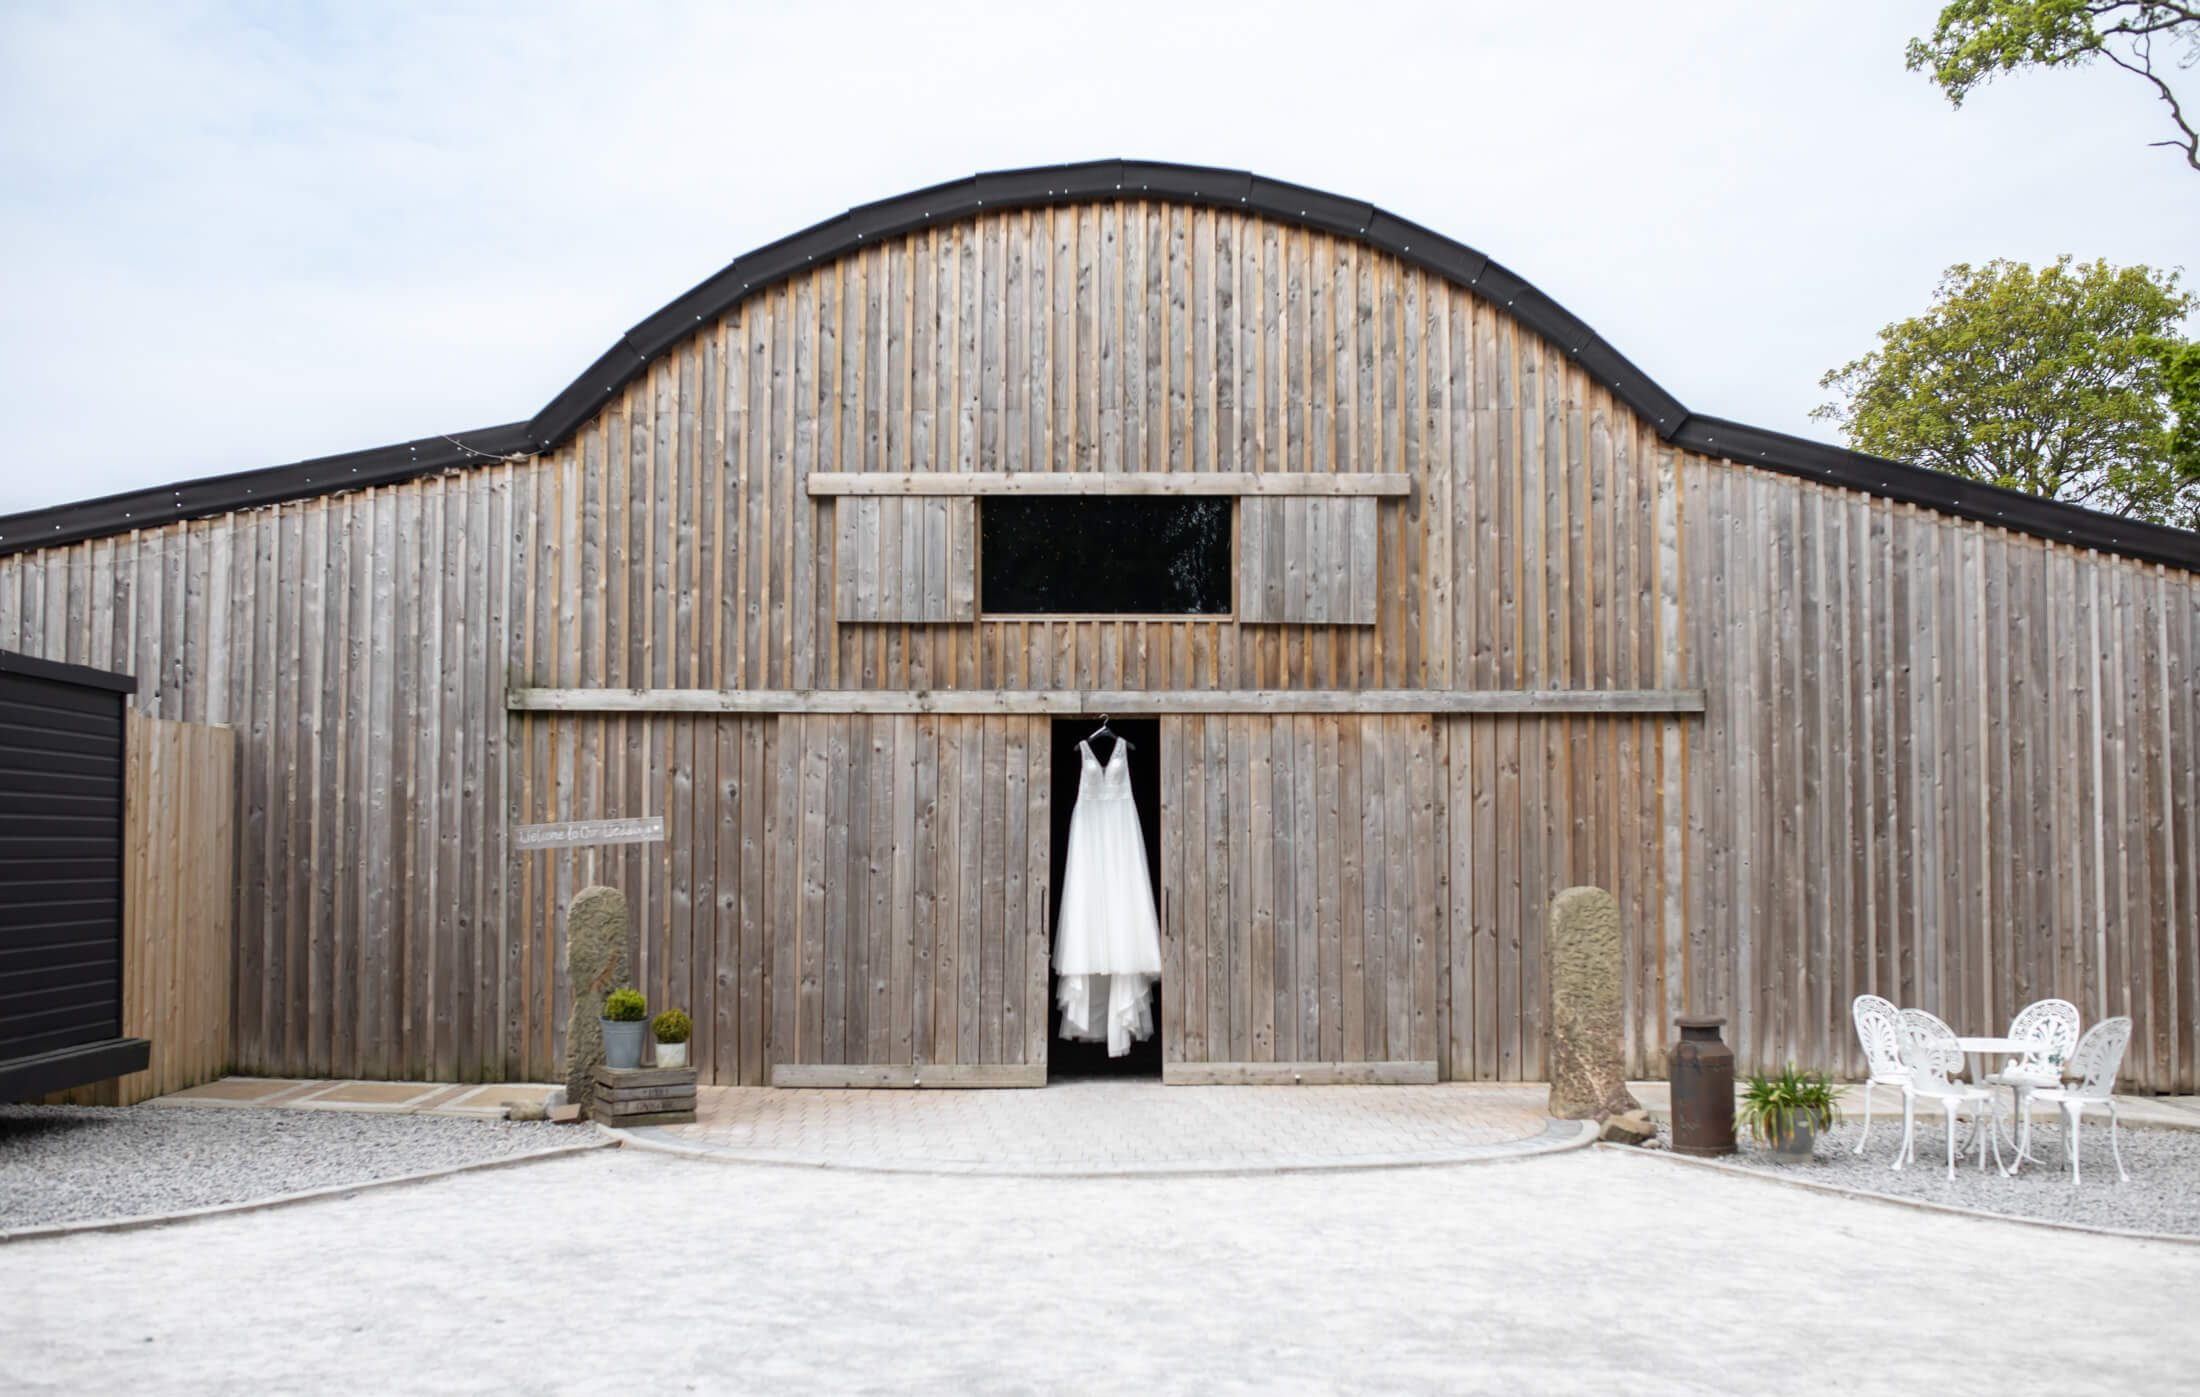 Alcumlow Wedding Barn with a dress hung in the doorway of the barn